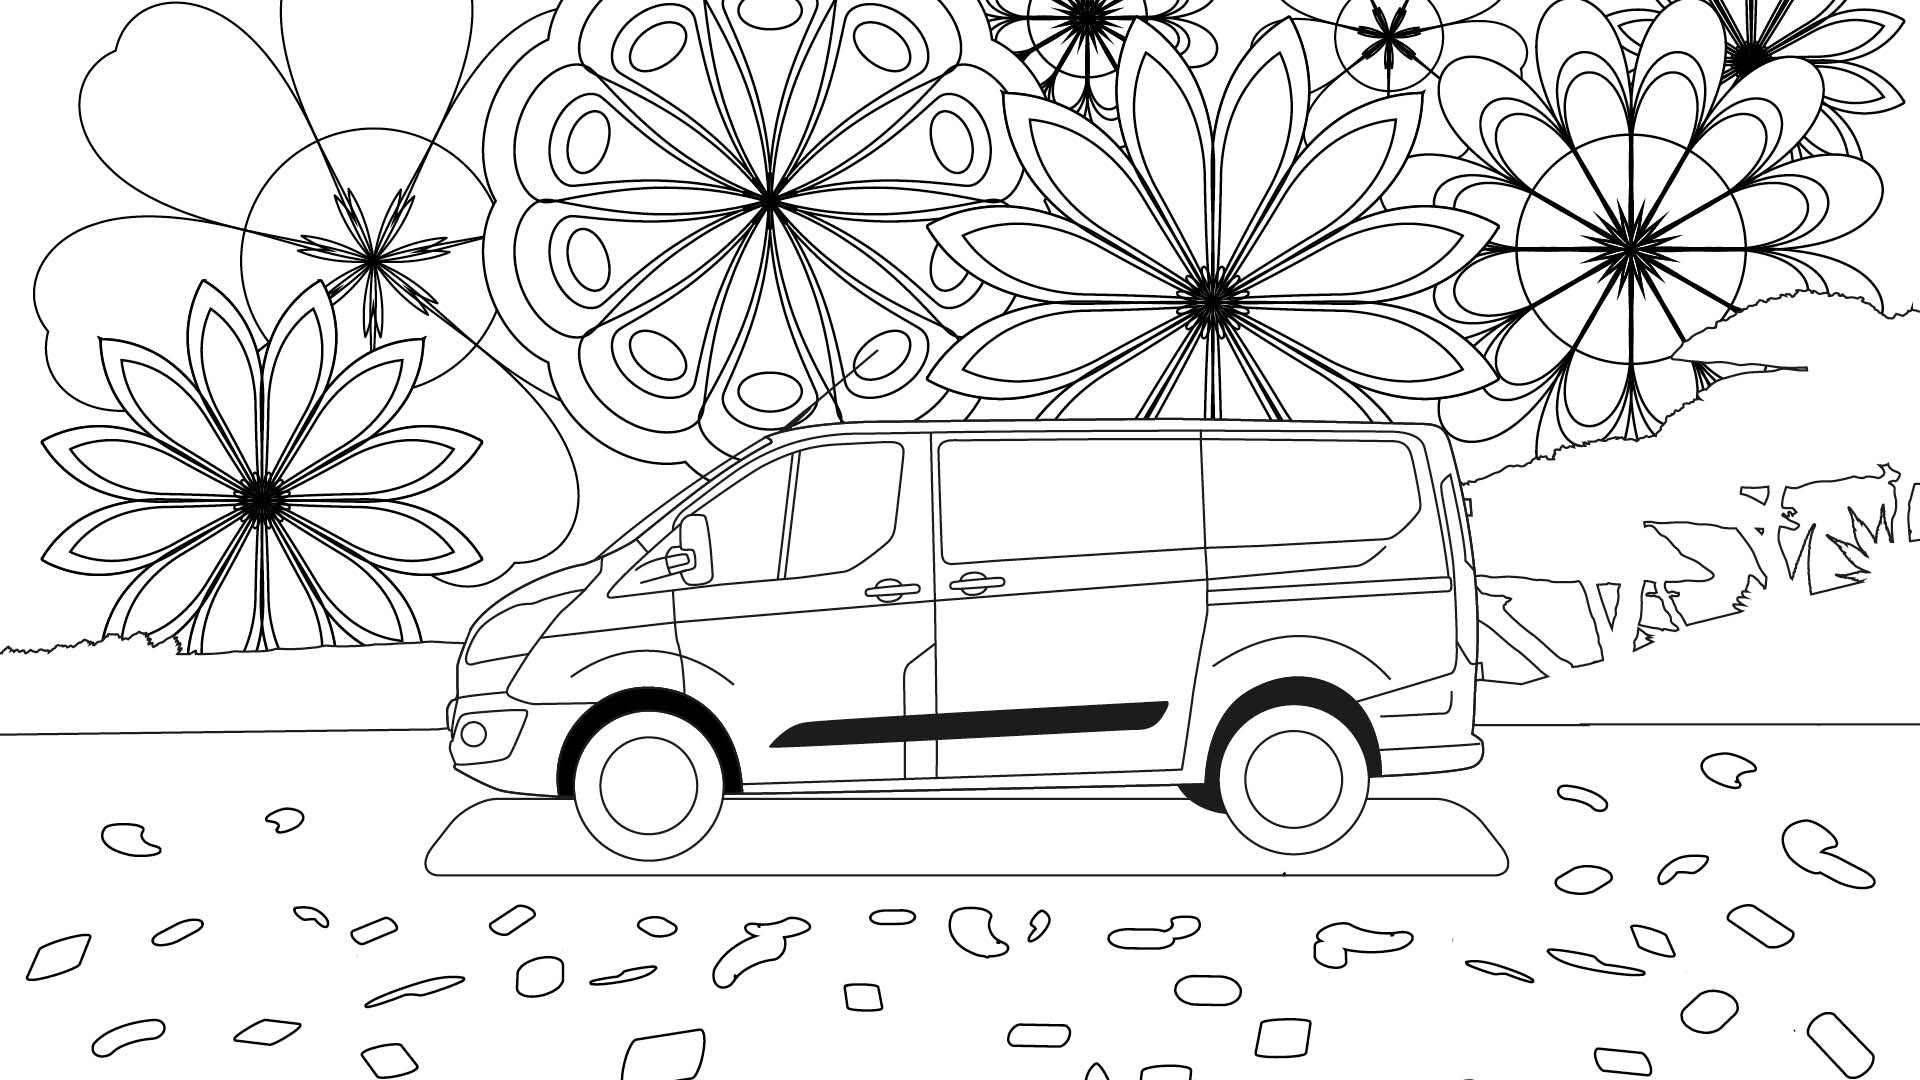 Ford Stay Home Transit colouring in poster